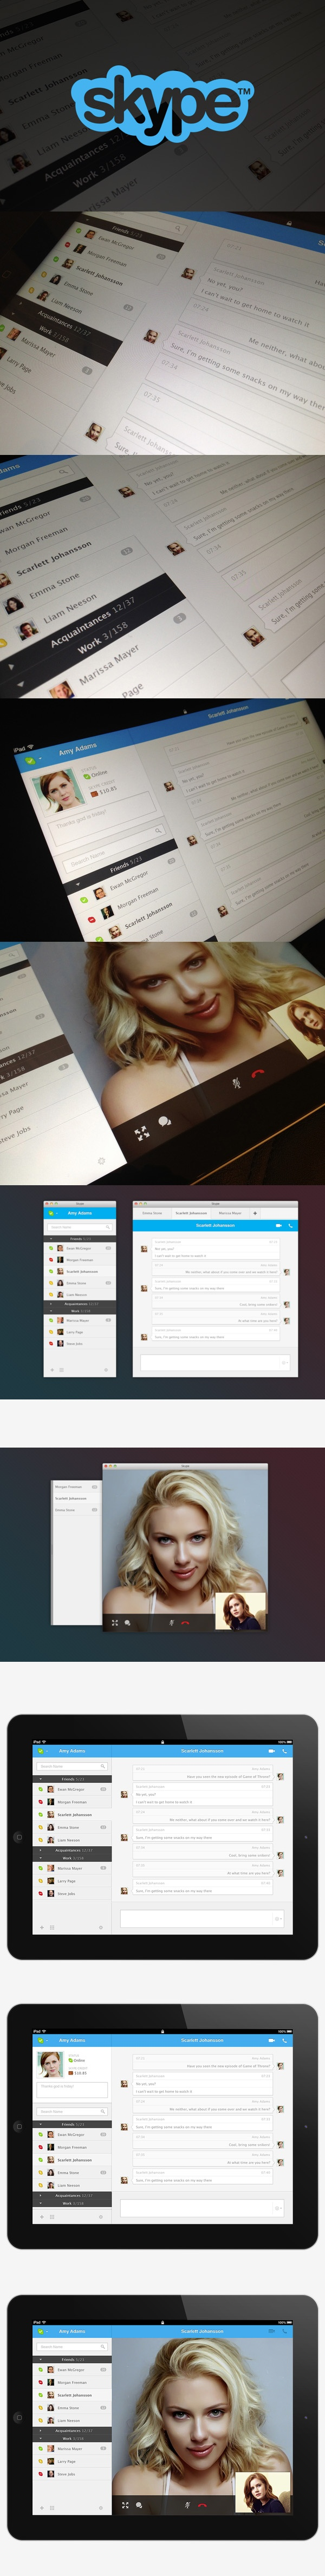 "SKYPE UI by Leonardo Zakour, via Behance *** "" This is a concept of the Skype application for iPad and MacOS (Applicable for Win too). The main idea was to work over different user interface elements to enhance the overall usability and user experience. """